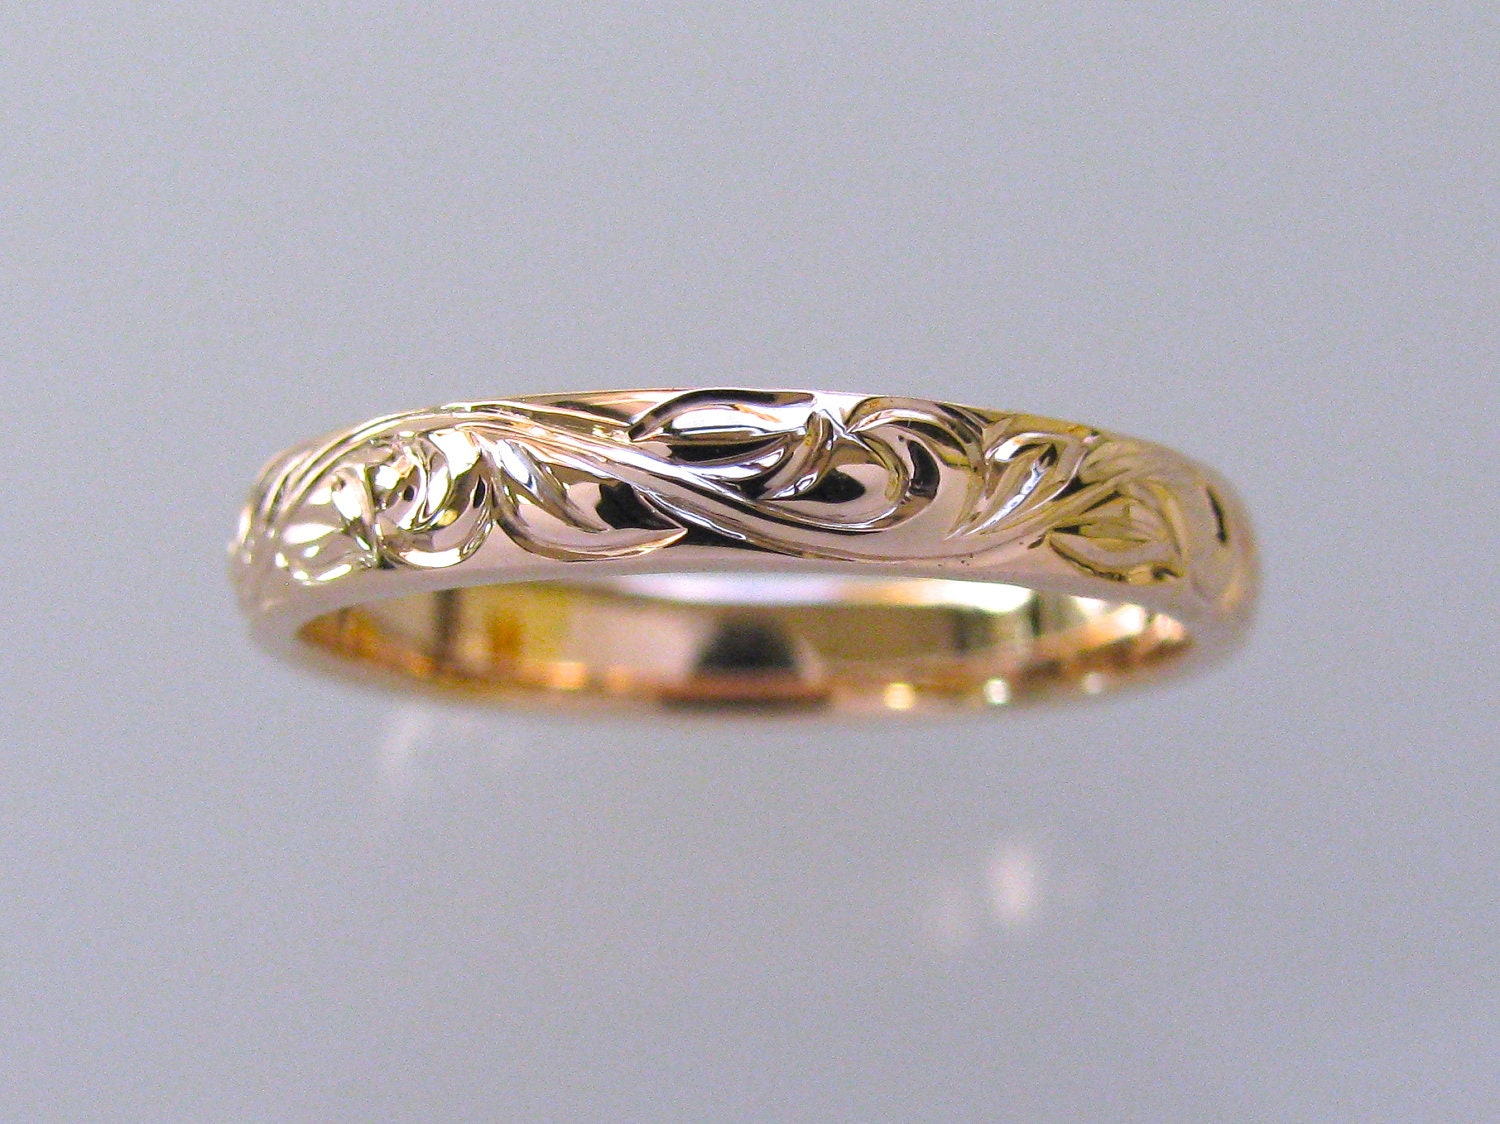 two yellow engraved wedding pattern band intricate gold mens in rings diamonds jewelry tone fascinating yg nl customized